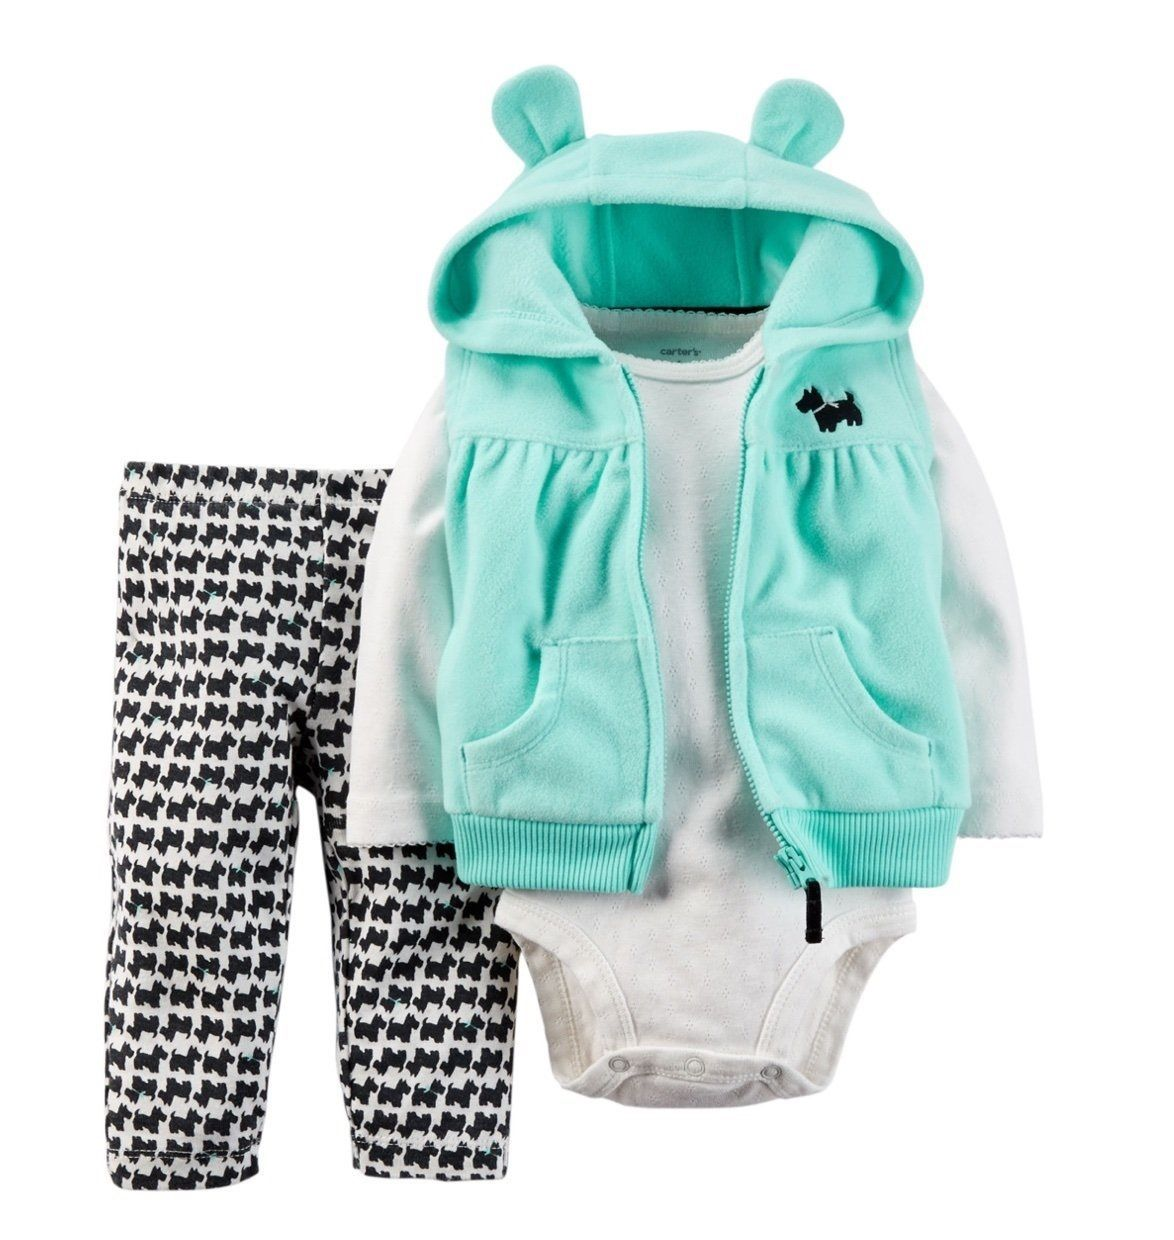 NEW NWT Boys Carter/'s 3 Piece Fleece Cardigan Set 3 or 6 Months Puppy